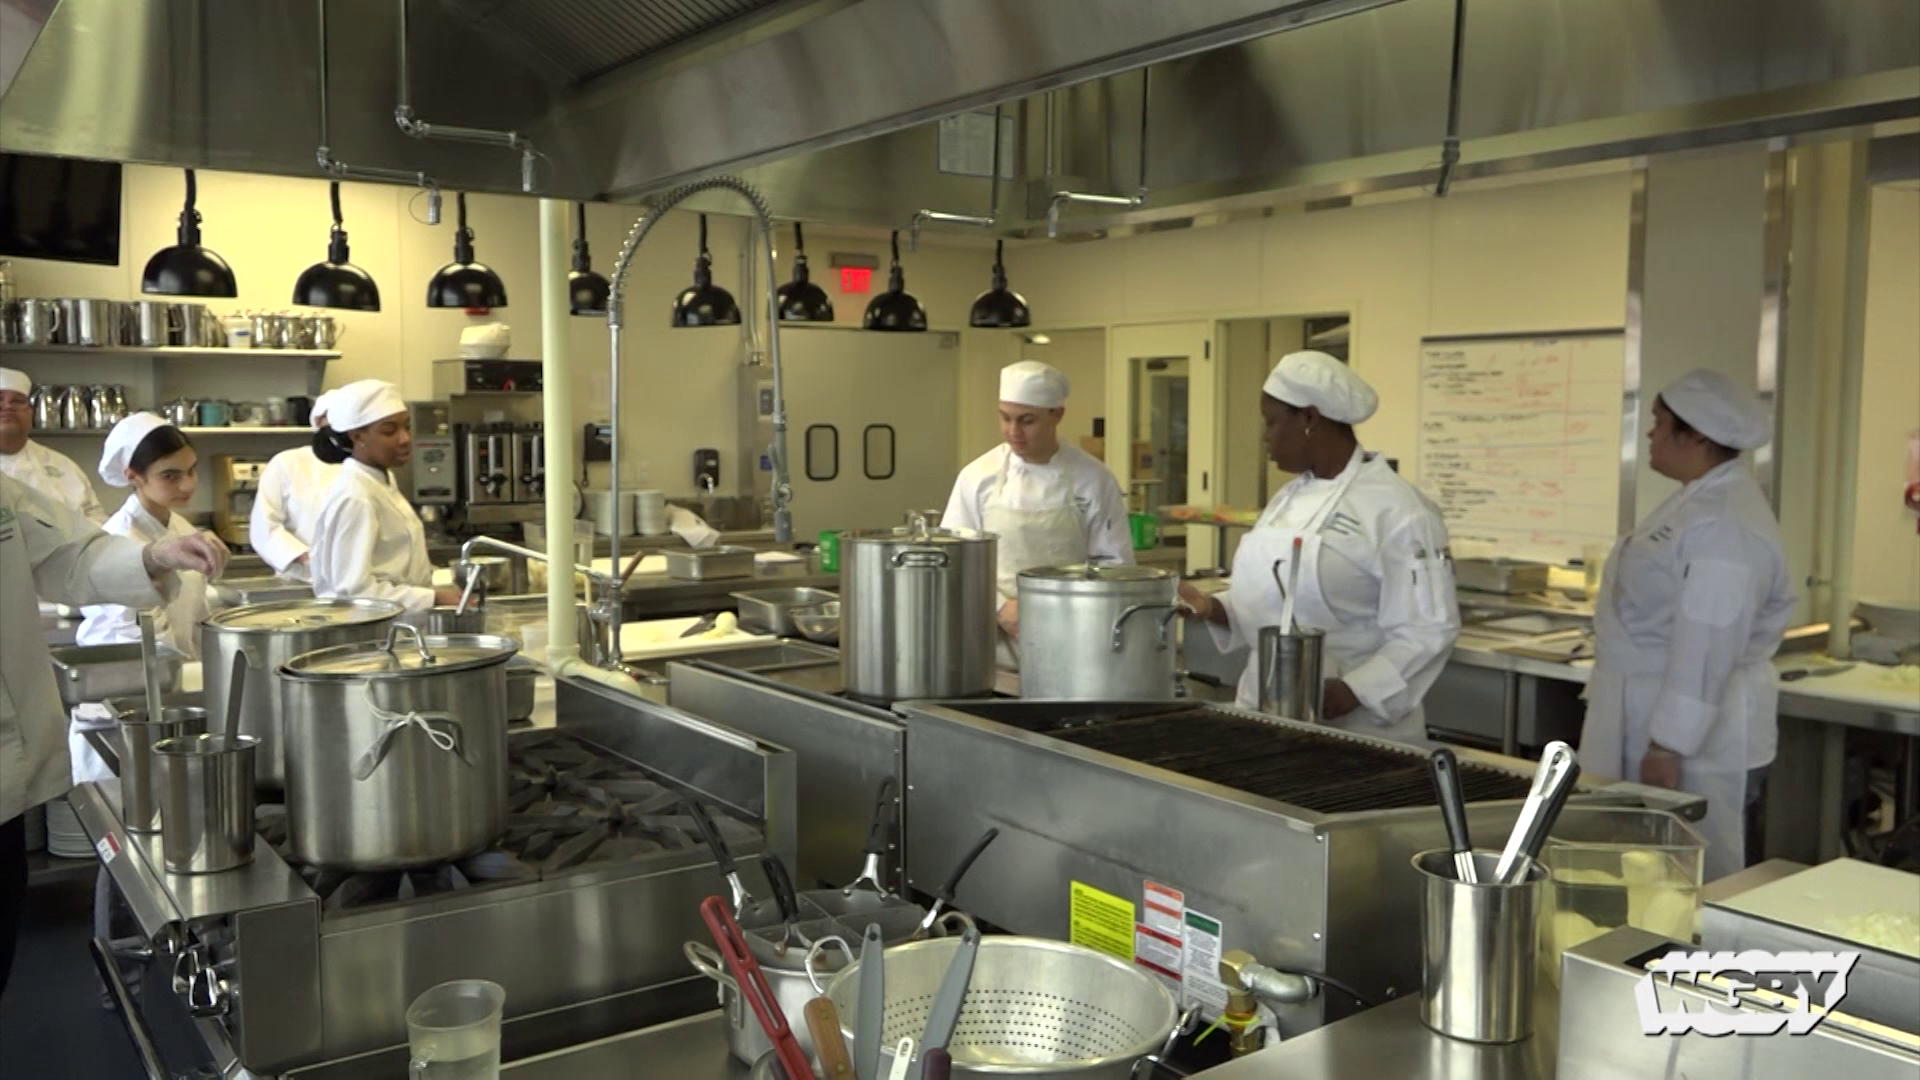 Learn about a four-week course at the HCC MGM Culinary Arts Institute that prepares students for culinary careers at Springfield's new casino.